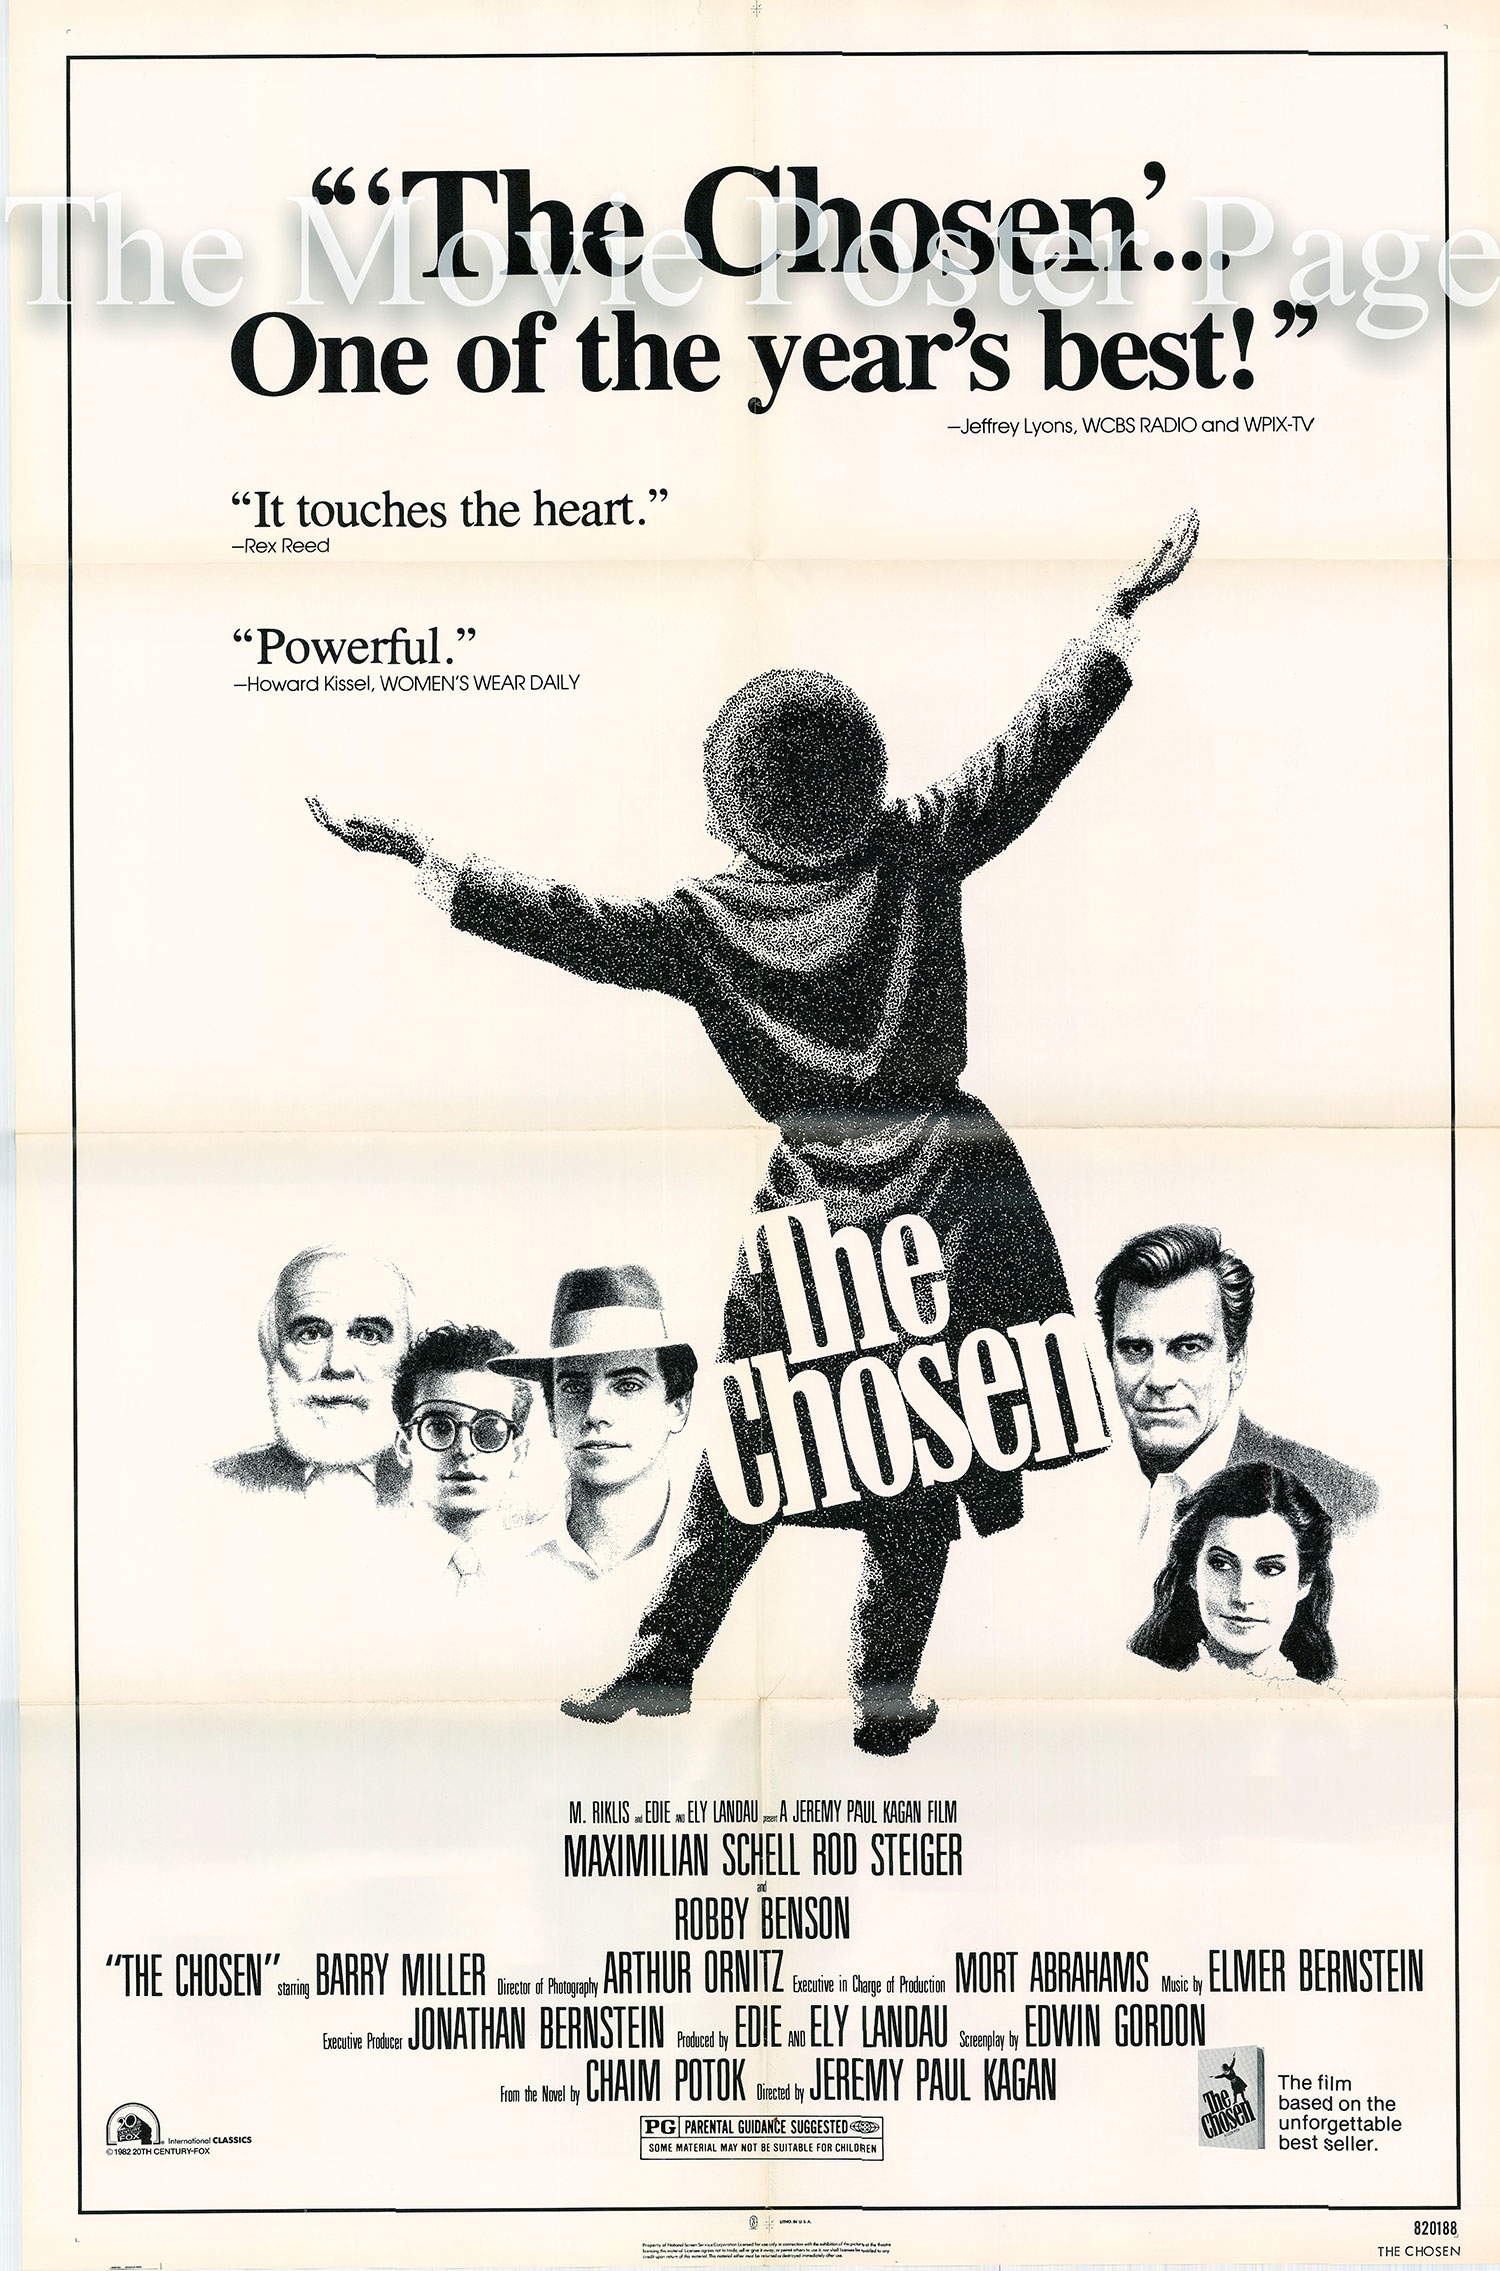 Pictured is a US promotional poster for the 1982 Jeremy Kagan film The Chosen starring Maximilian Schell.